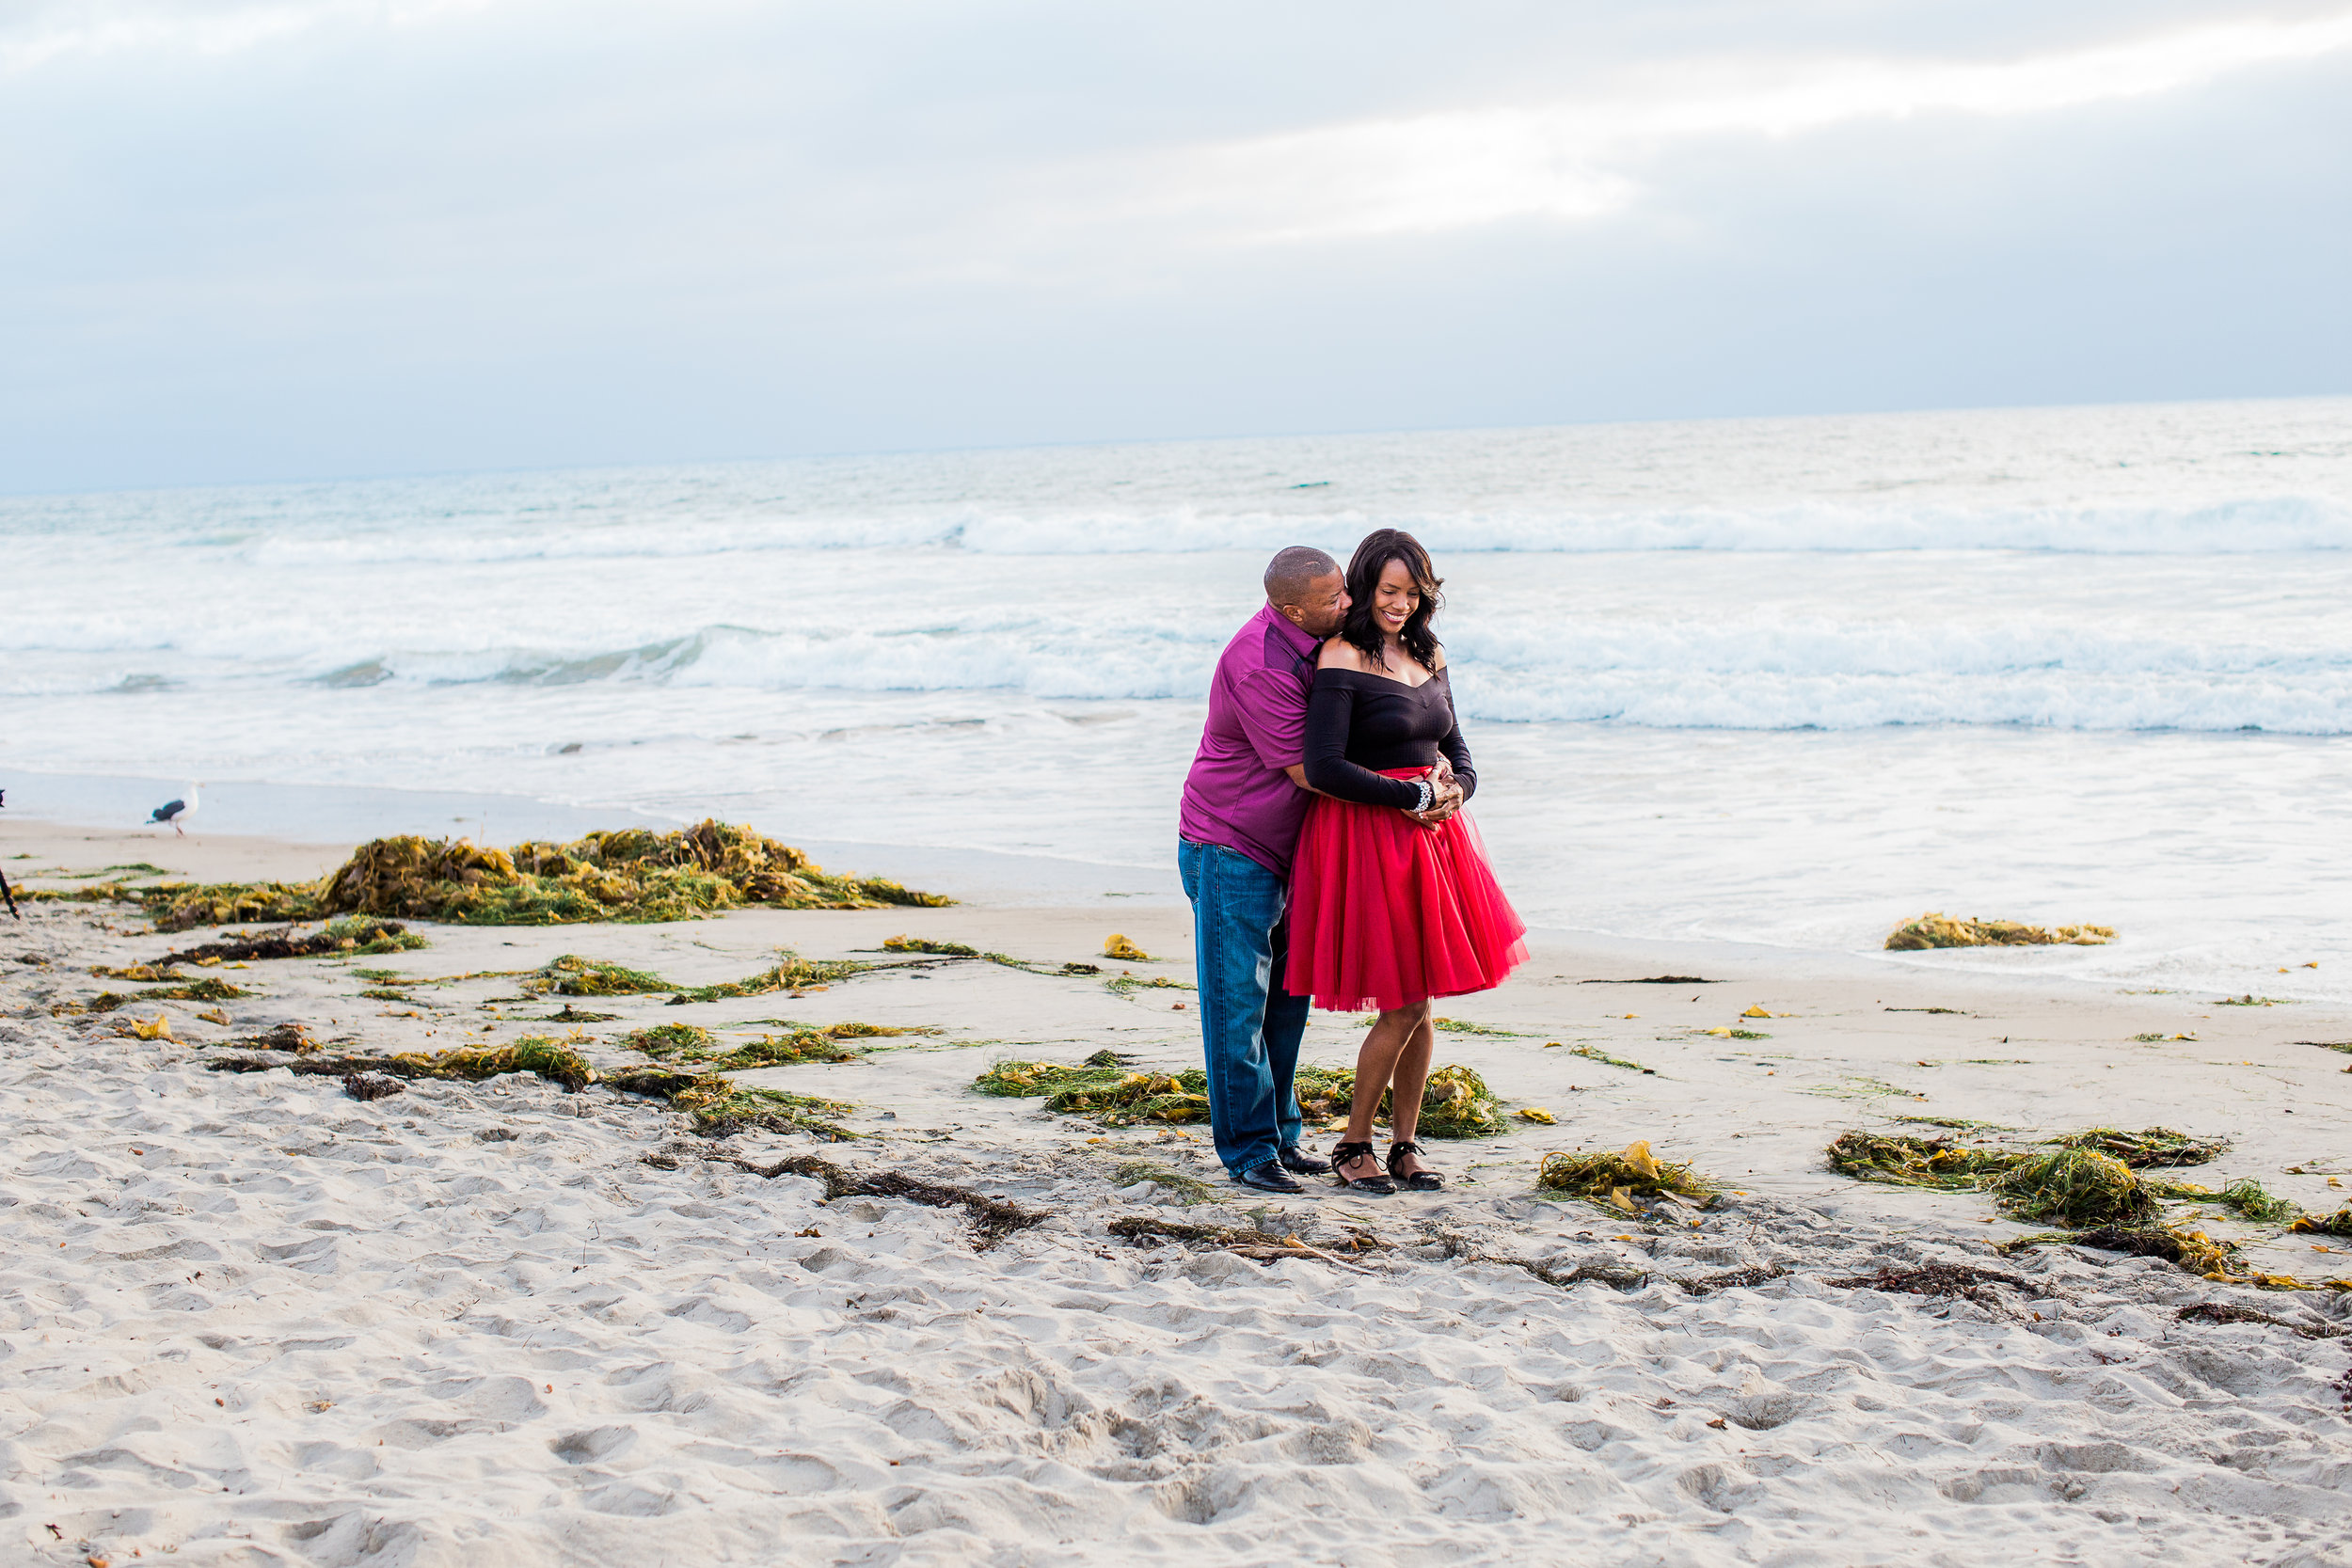 san-diego-pacific-beach-styled-engagement-romantic-photographer (34 of 76).jpg